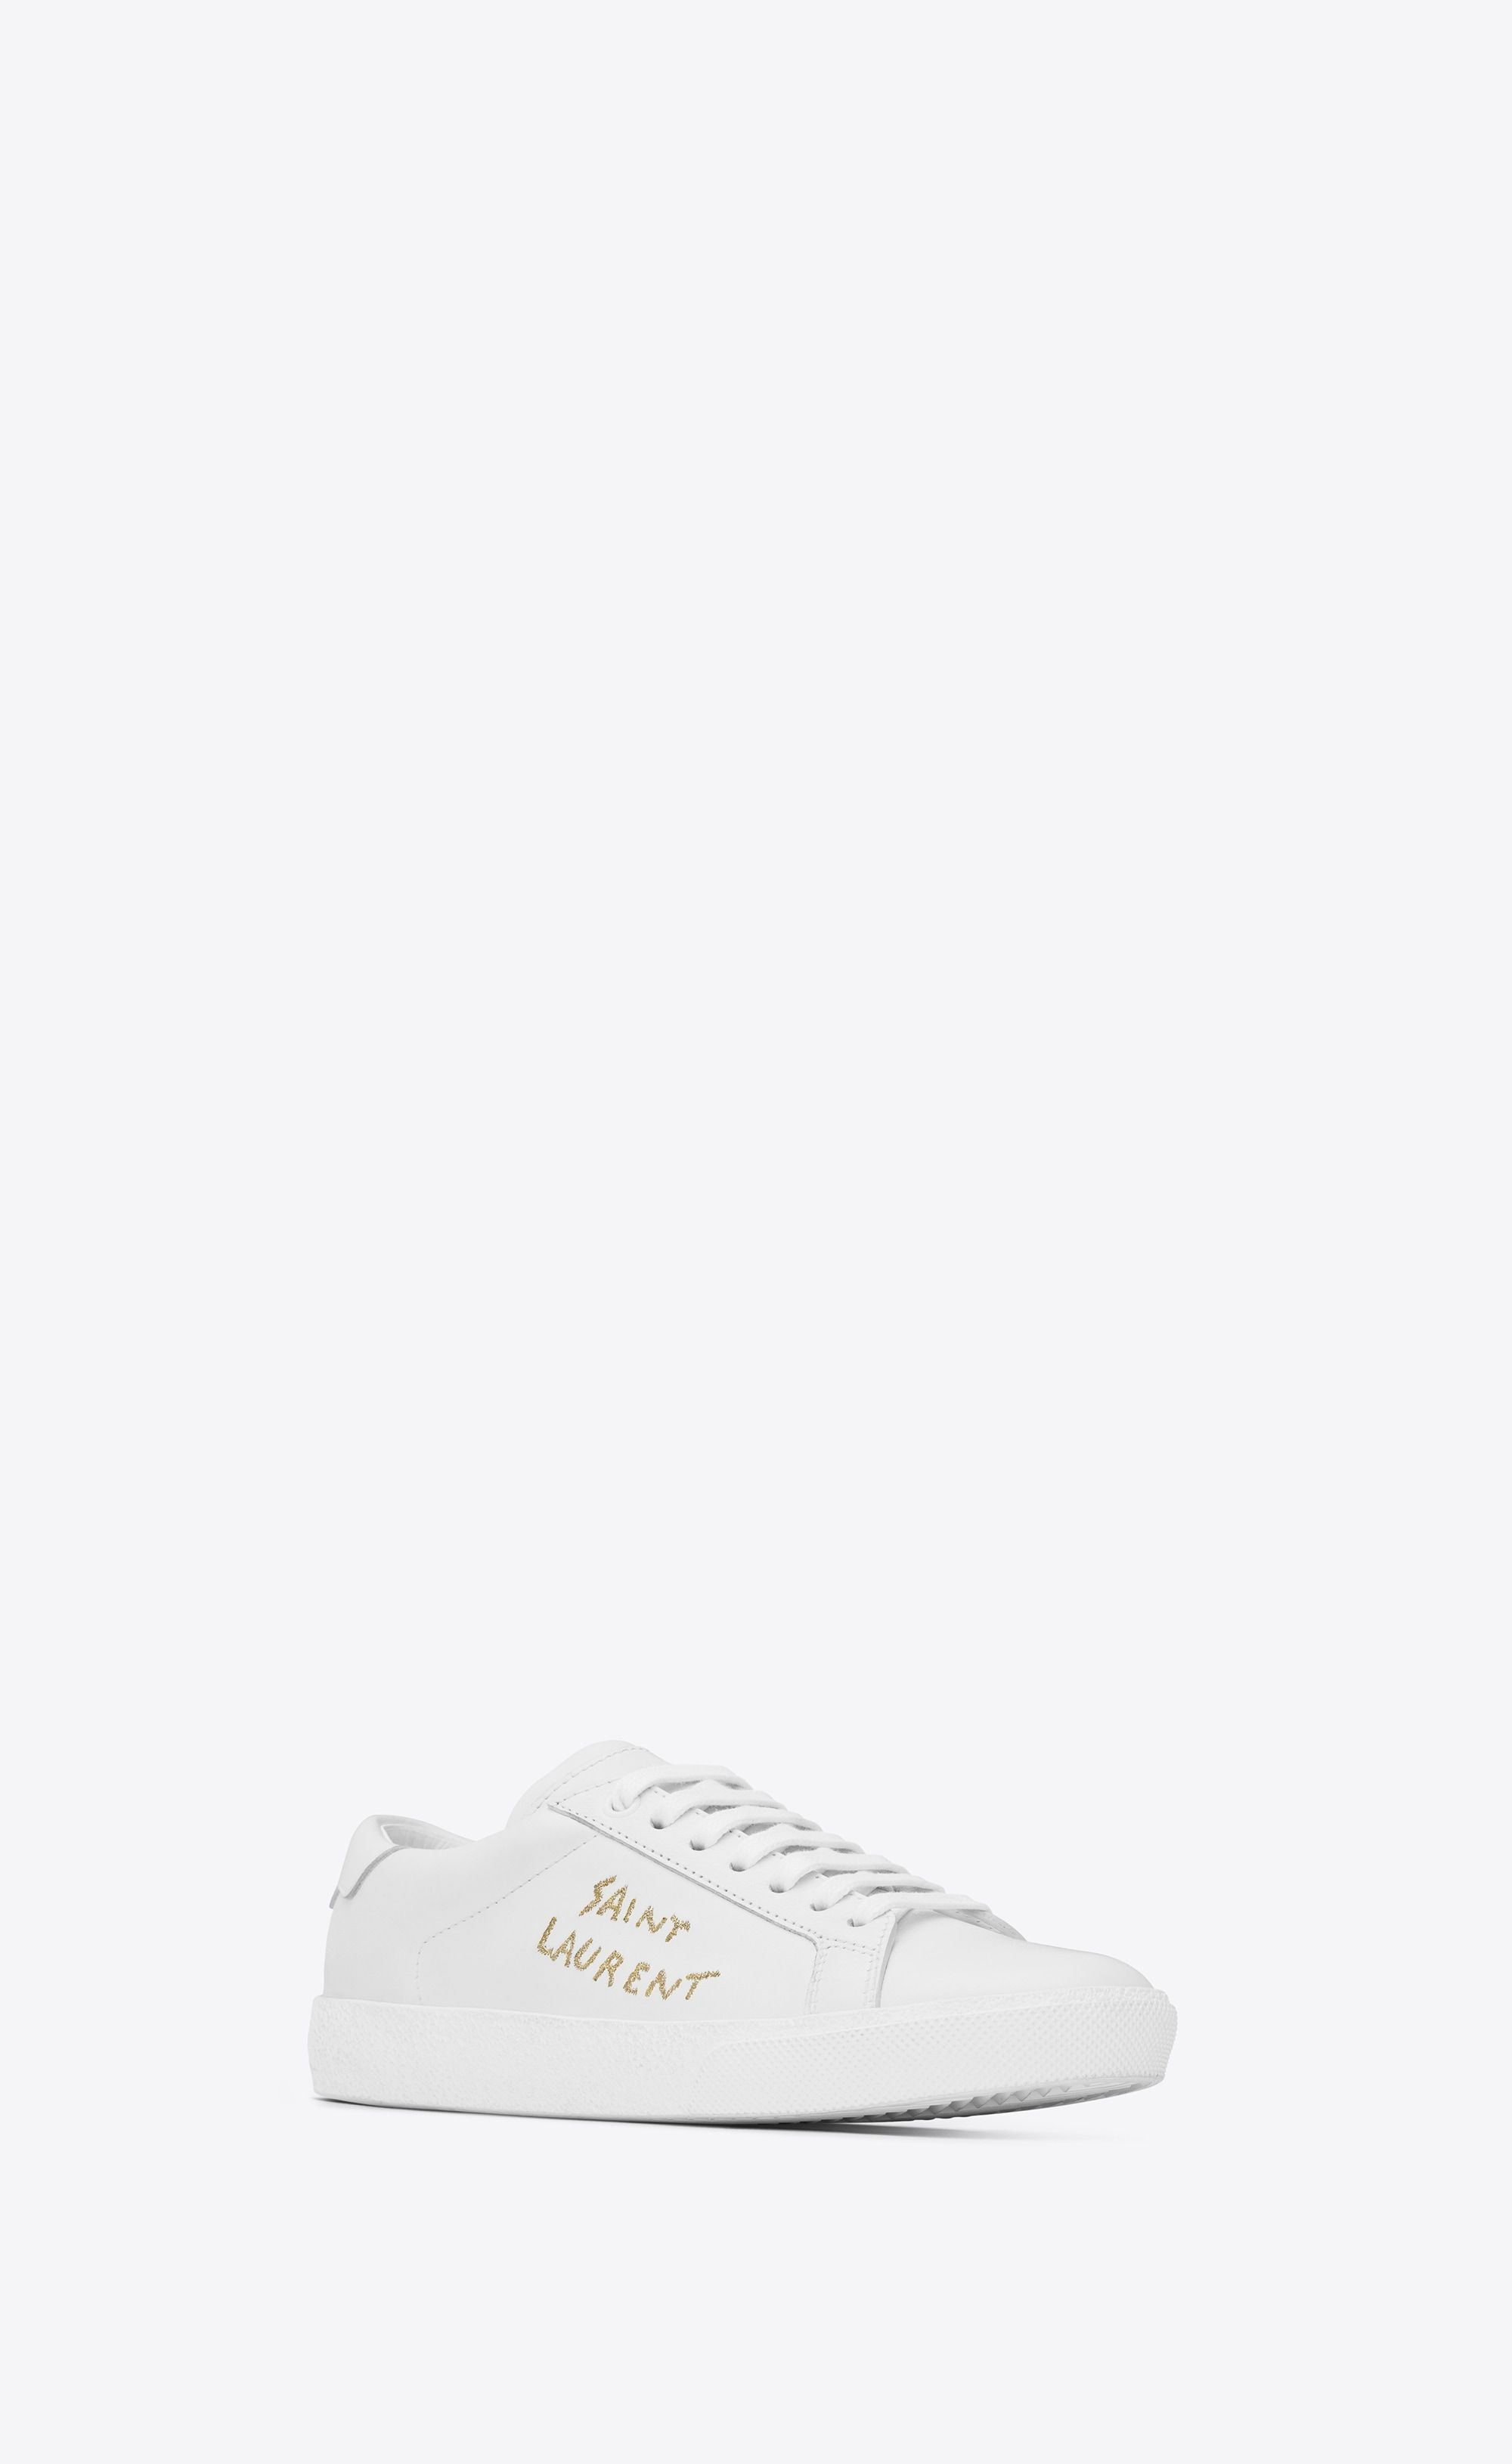 141aa0cfa2a Saint Laurent - Court Classic SL/06 sneaker in optic white leather and gold  embroidery